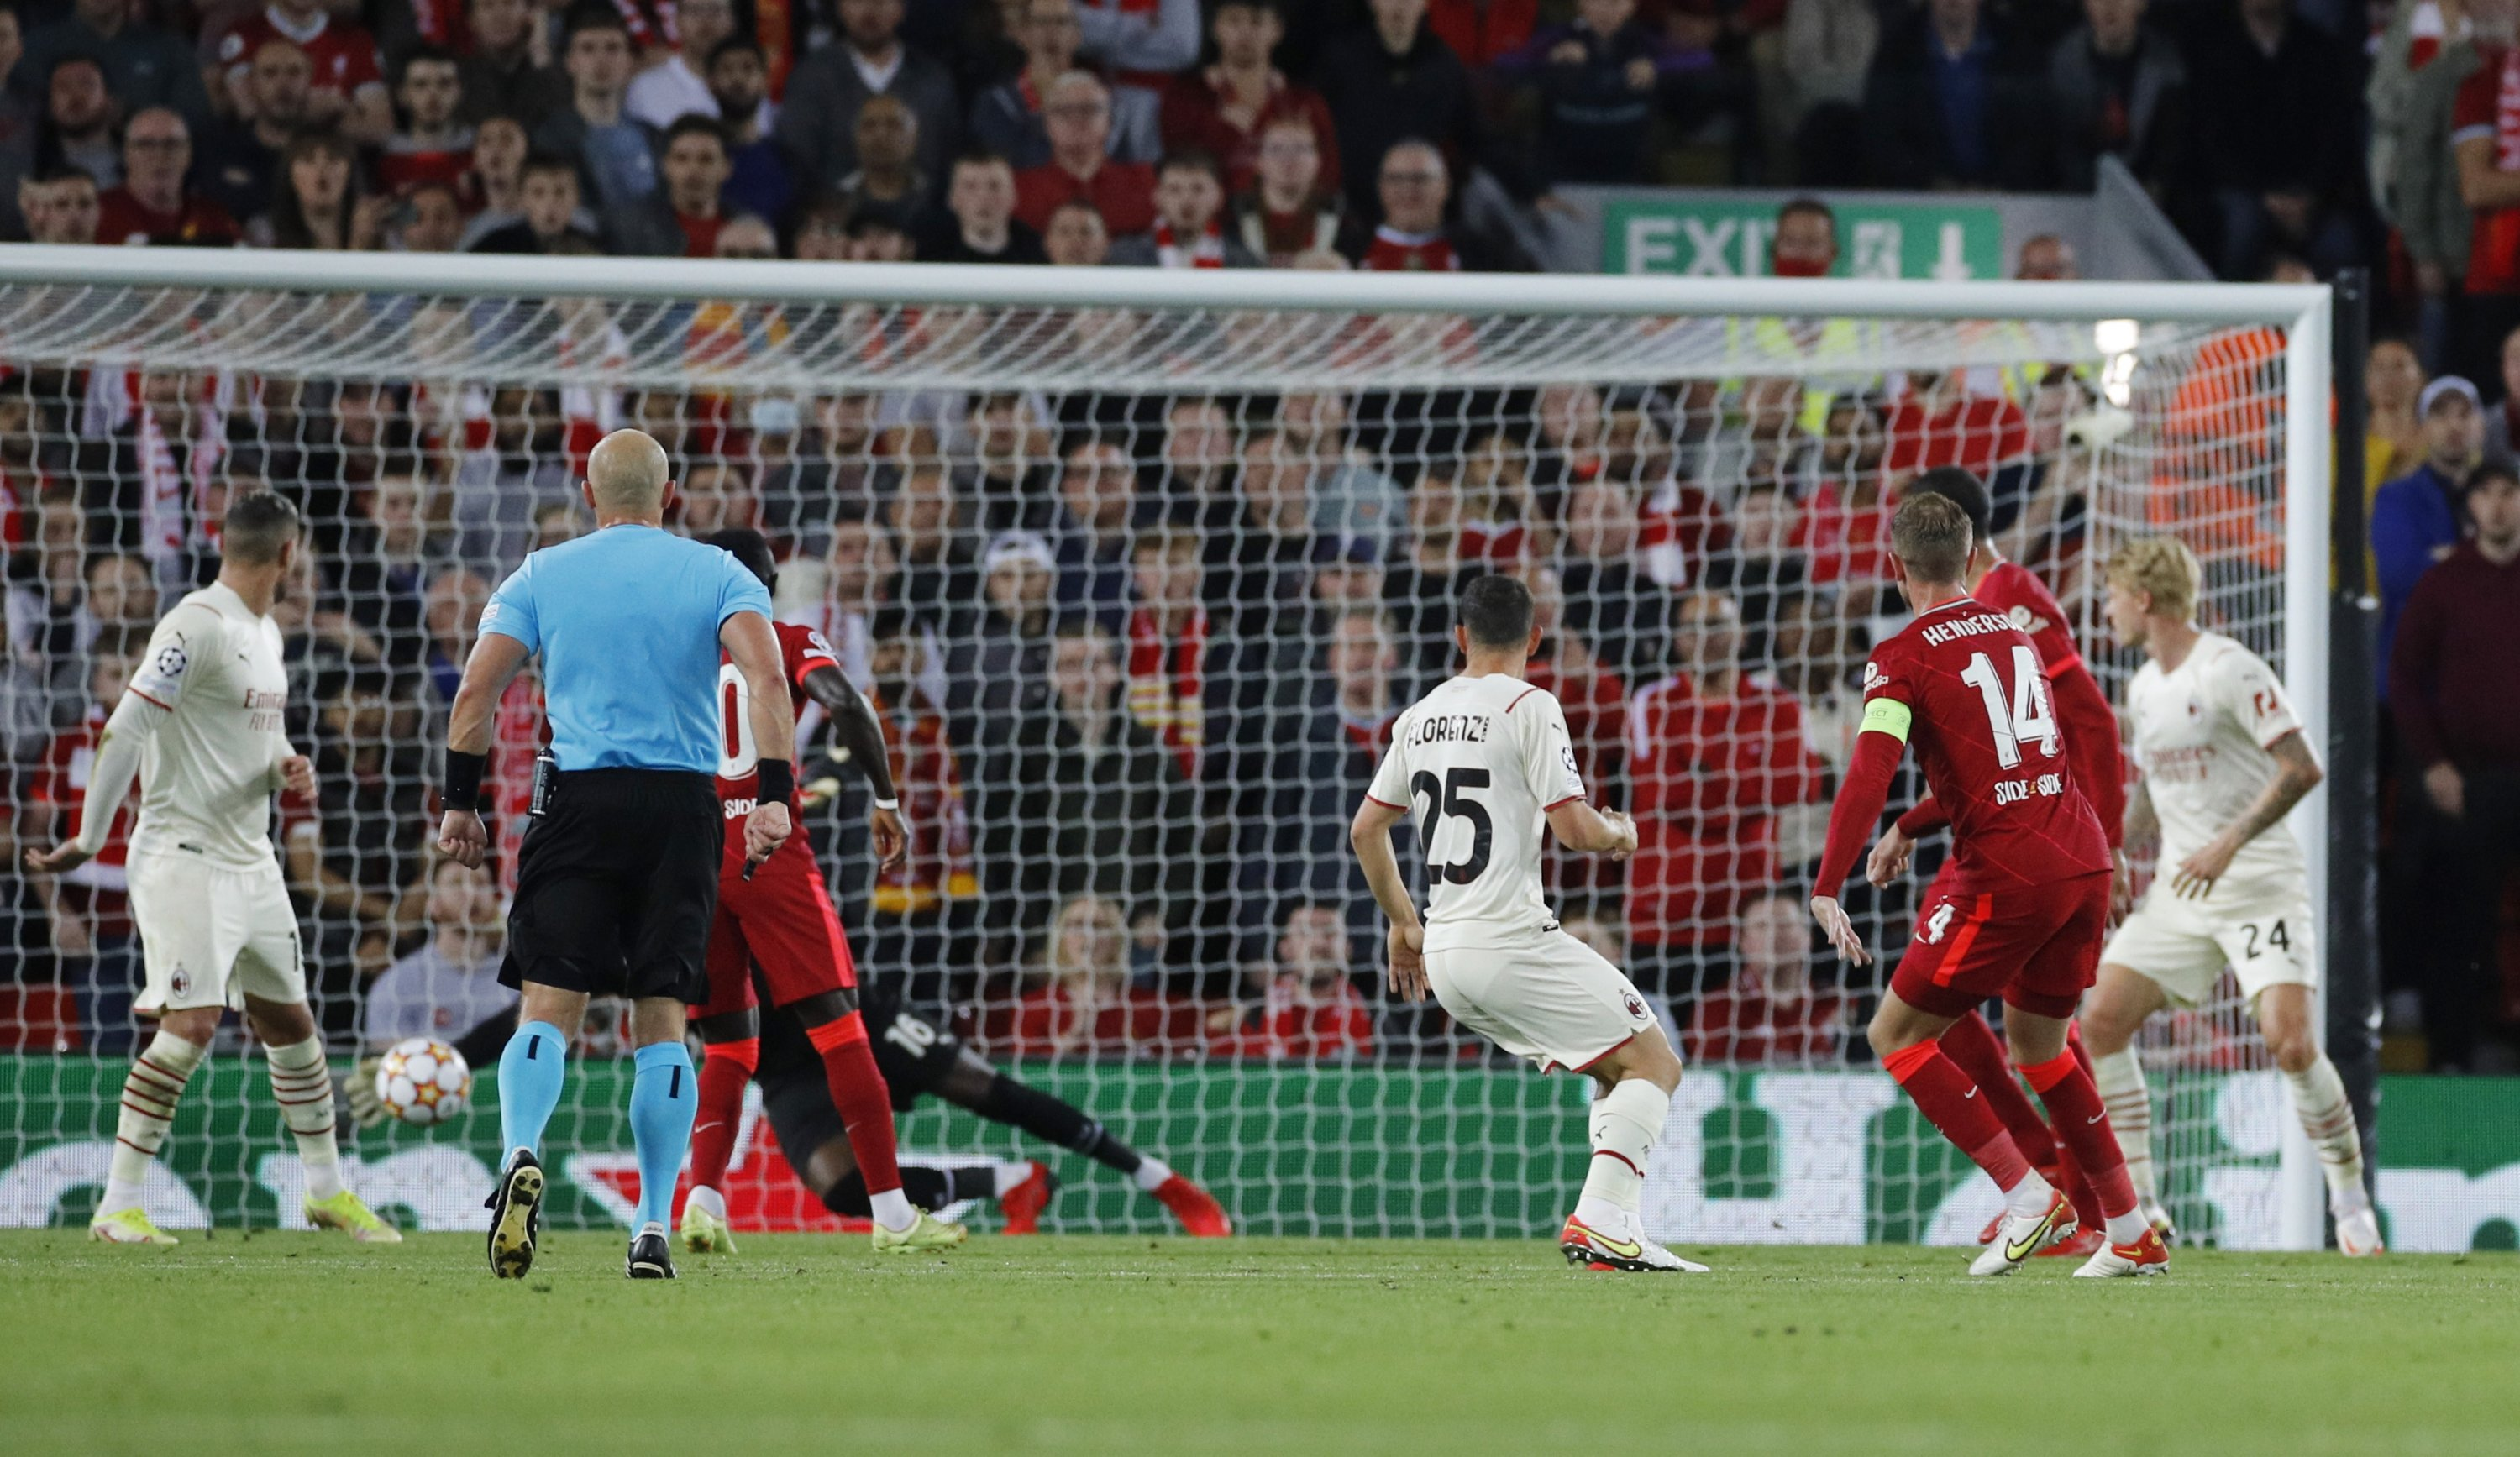 Liverpool's Jordan Henderson scores his team's third goal during the Champions League Group B football match between Liverpool and Milan at the Anfield, Liverpool, England, Sept. 15, 2021. (Reuters Photo)